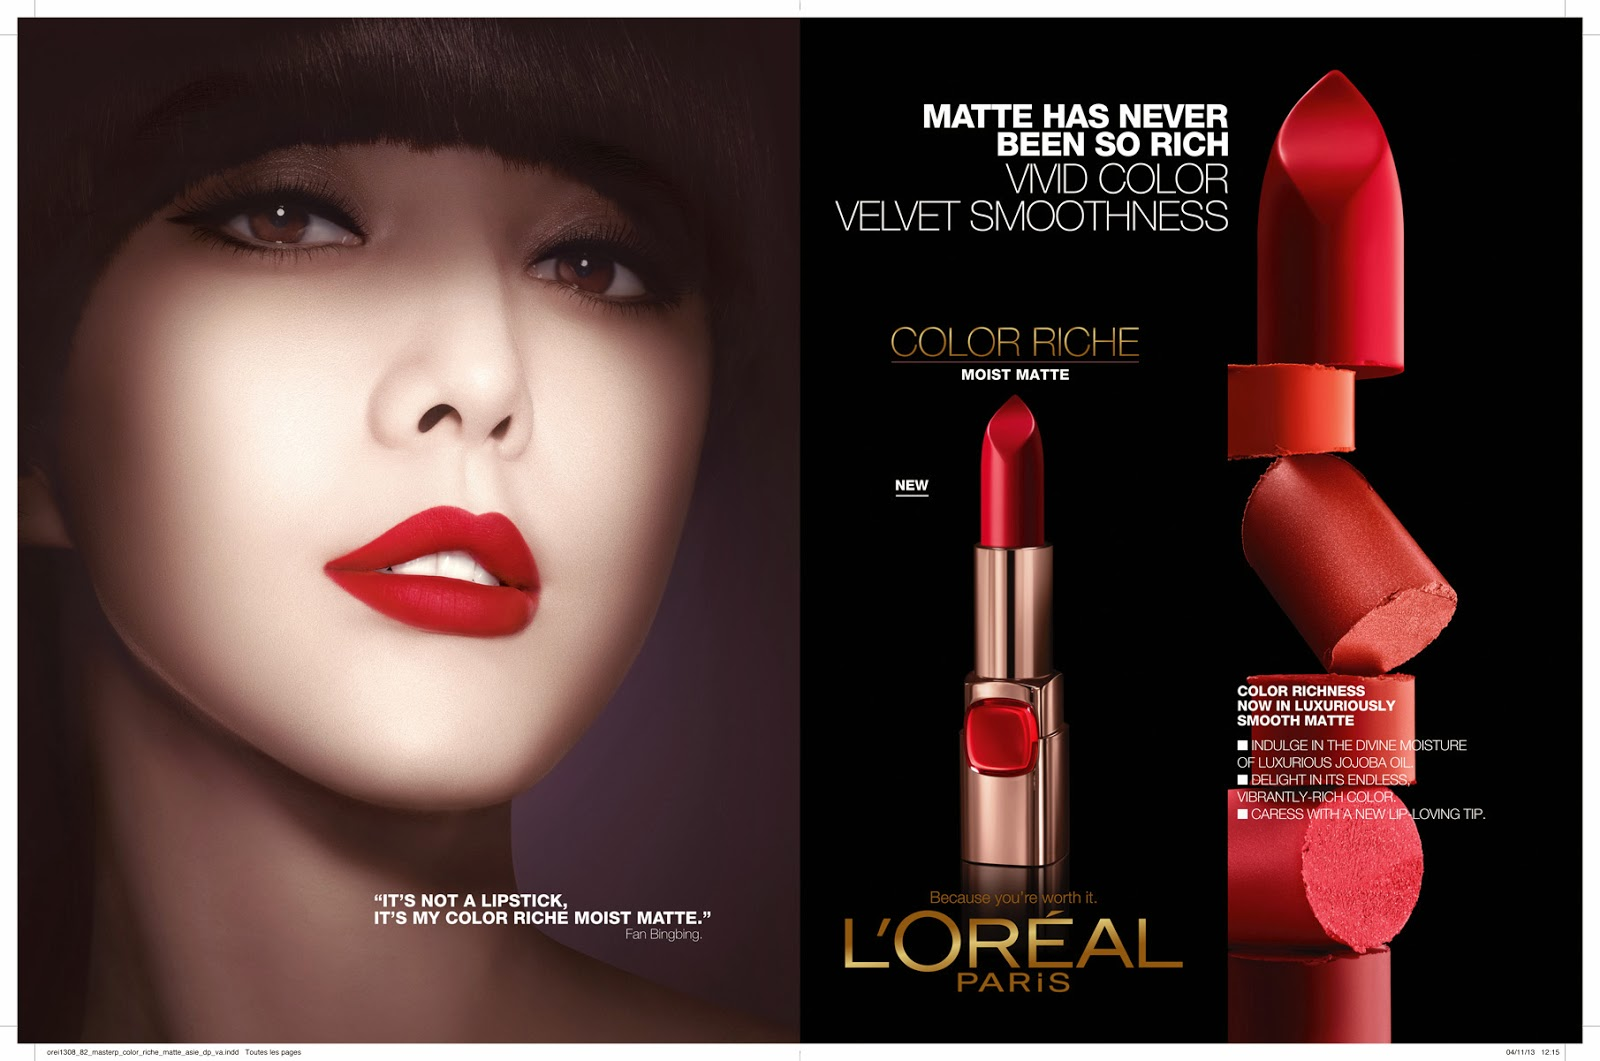 loreal 4ps Another way maybelline keeps its relevance is through the use of videos sharing video content is now easier – and more effective – than ever.